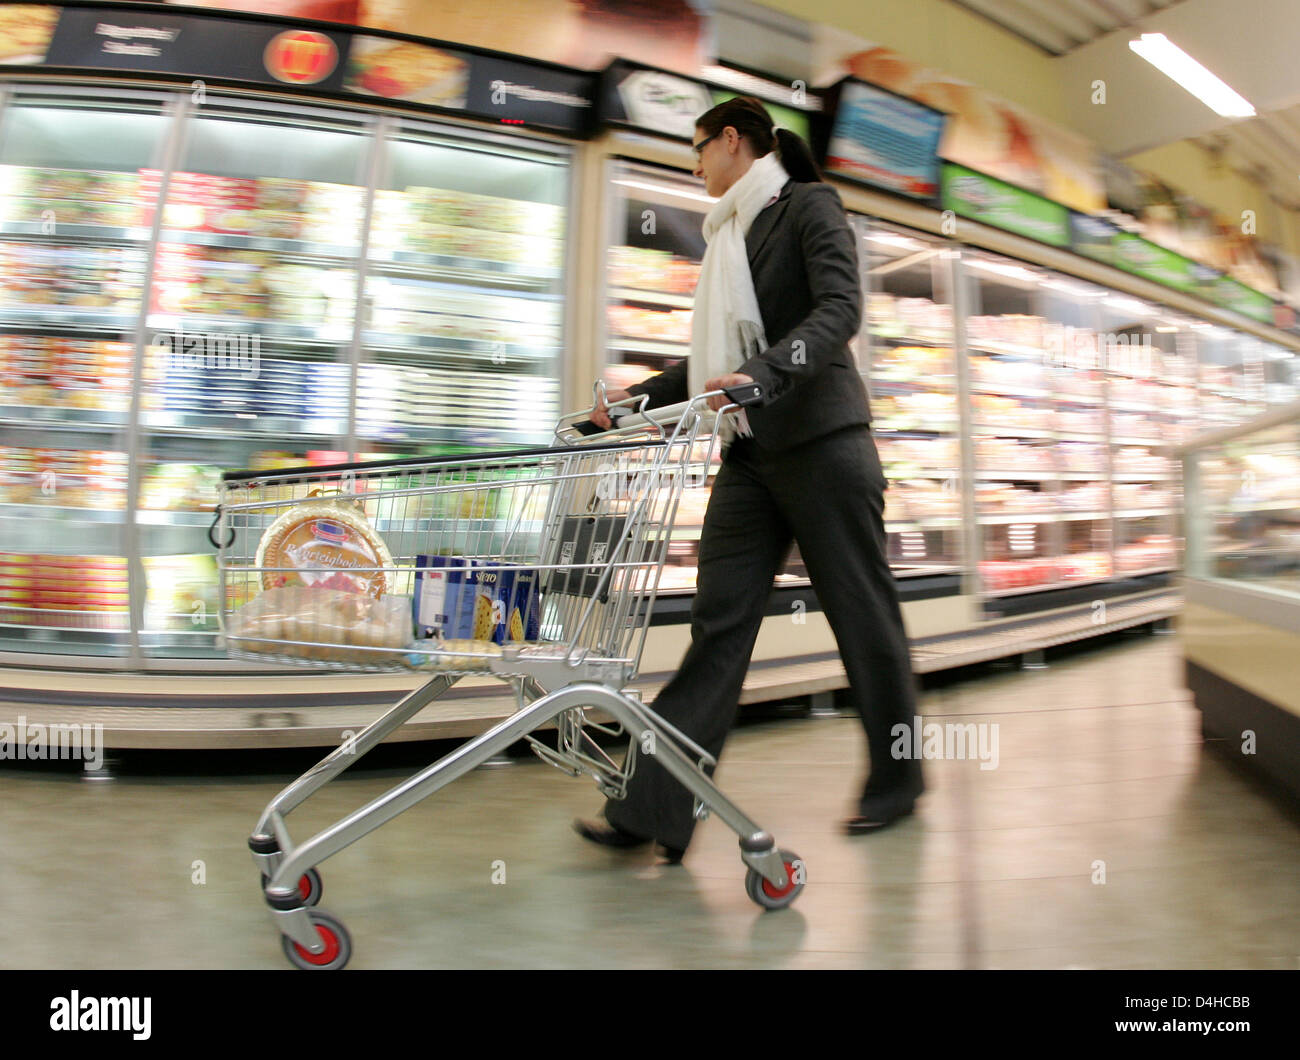 A mystery shopper is pictured in the first so-called